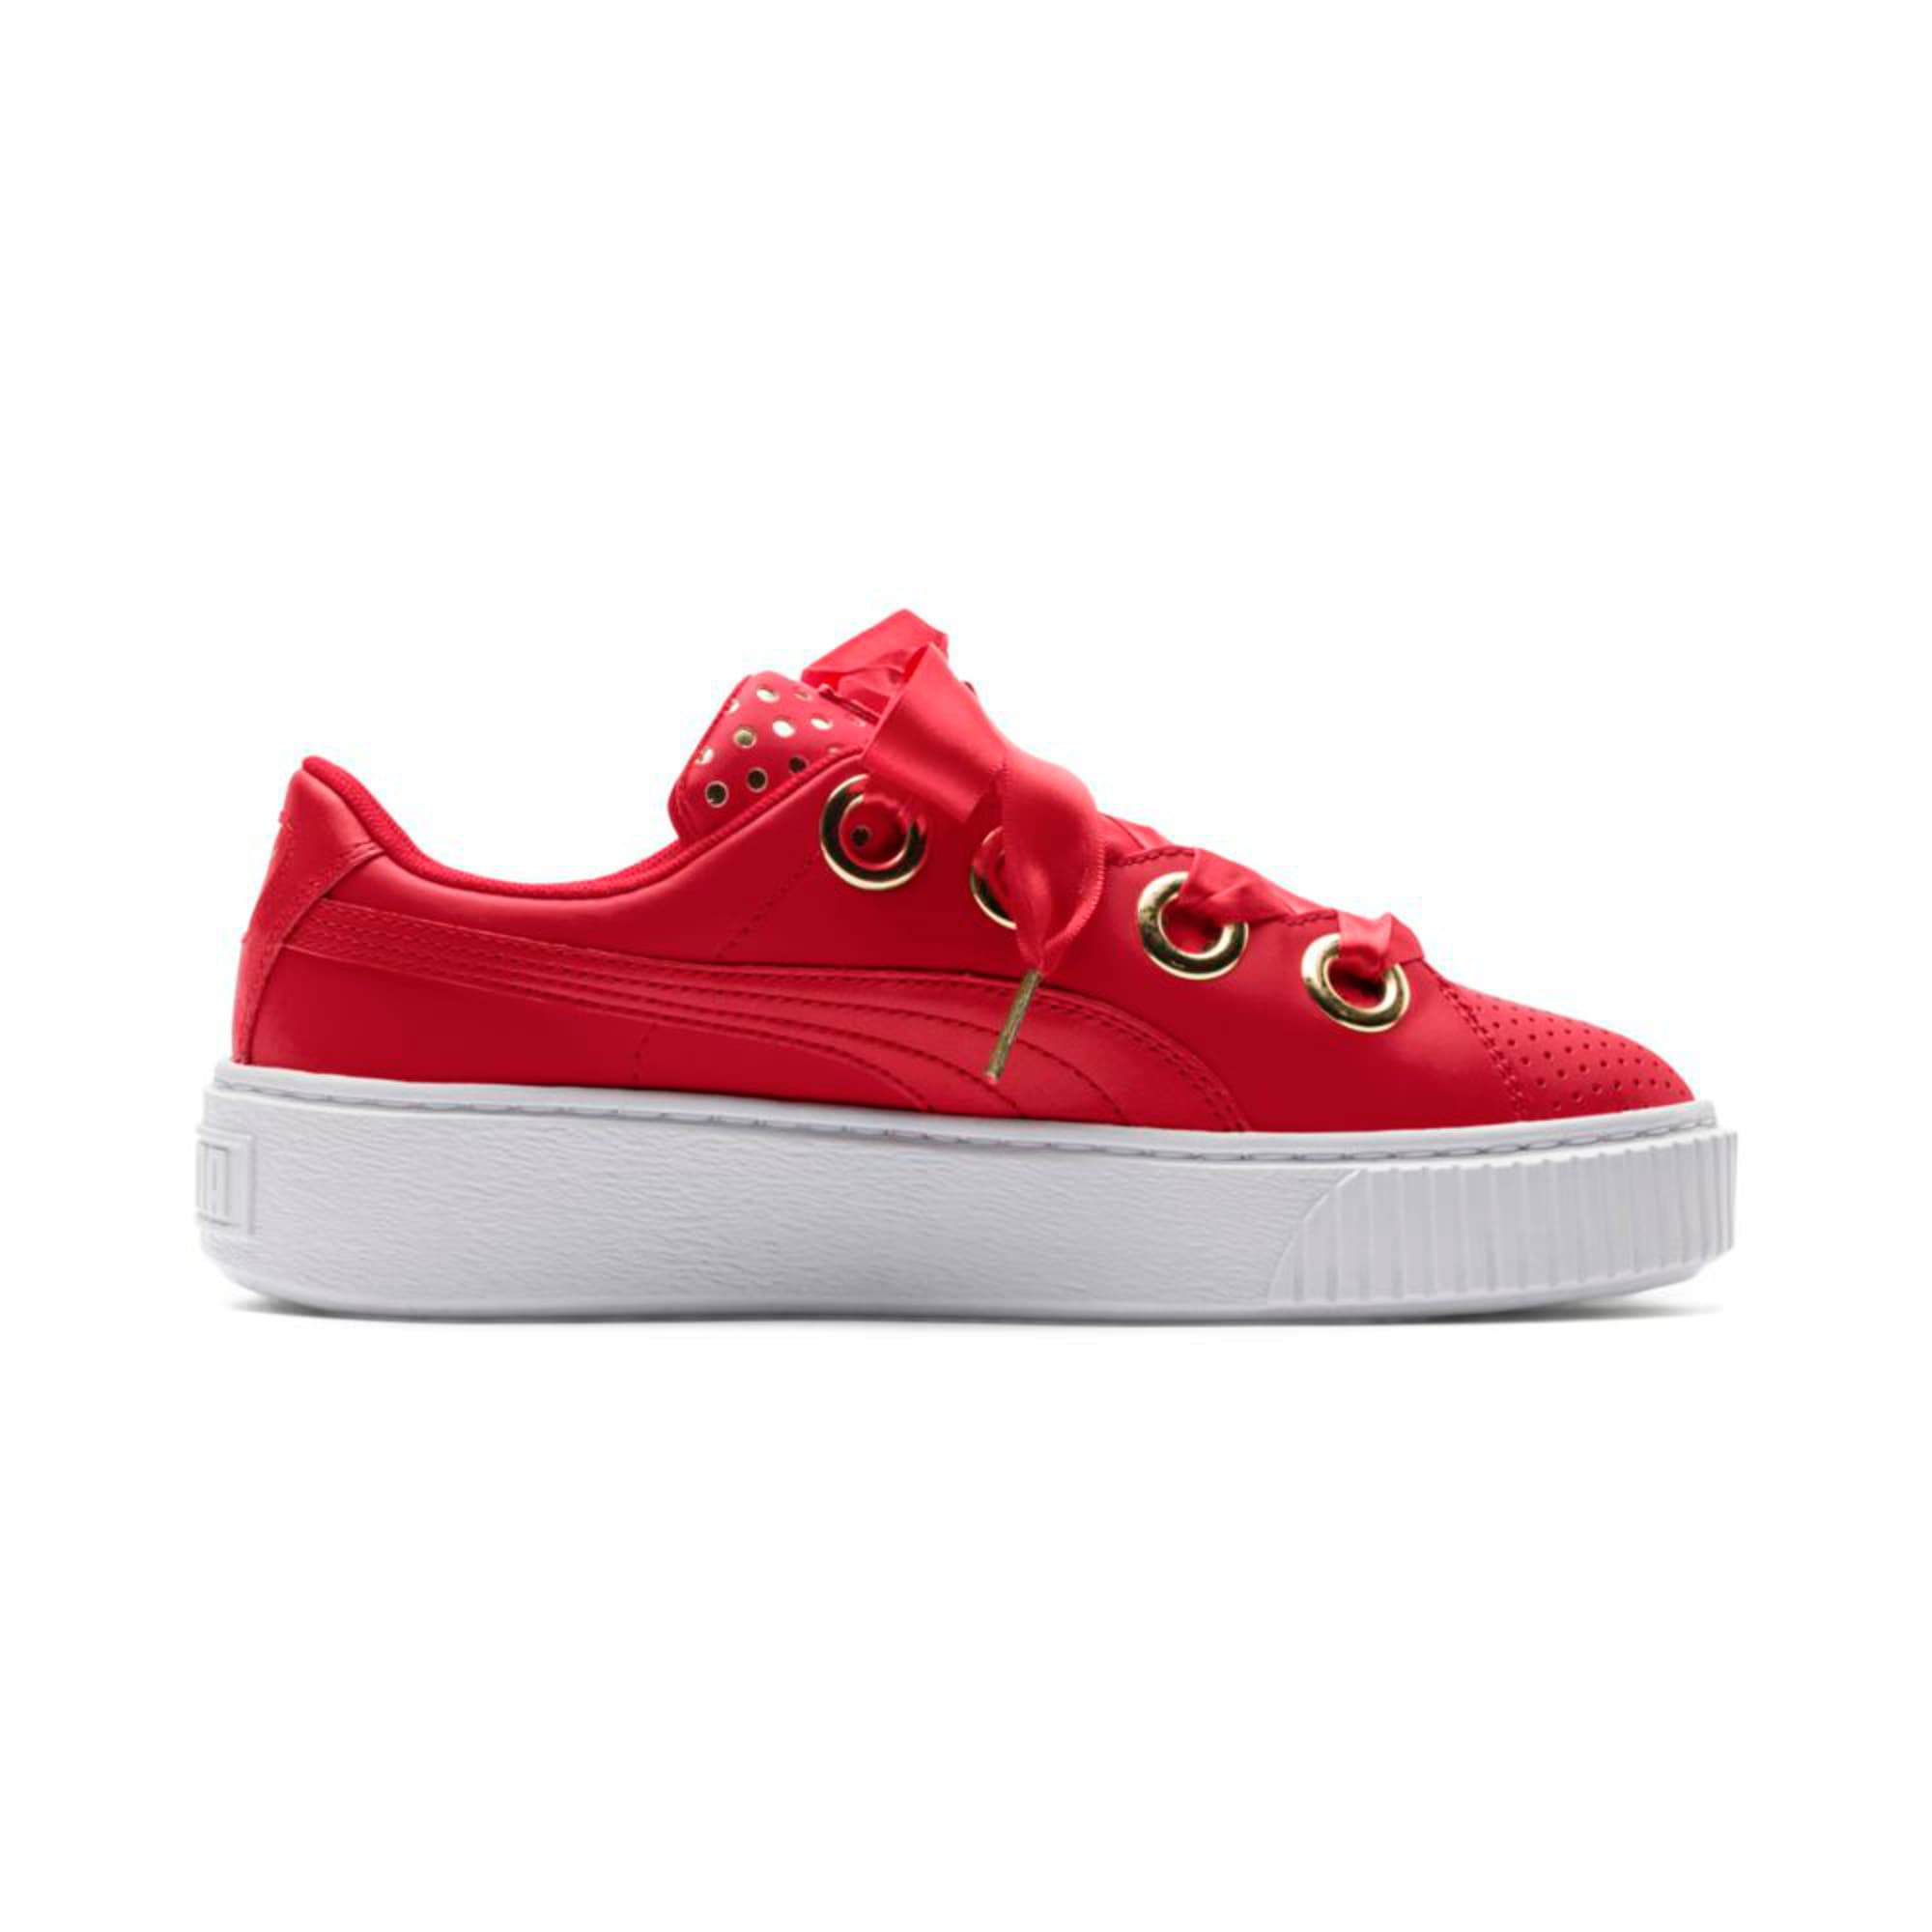 Thumbnail 5 of Platform Kiss Ath Lux Women's Trainers, Ribbon Red-Ribbon Red, medium-IND